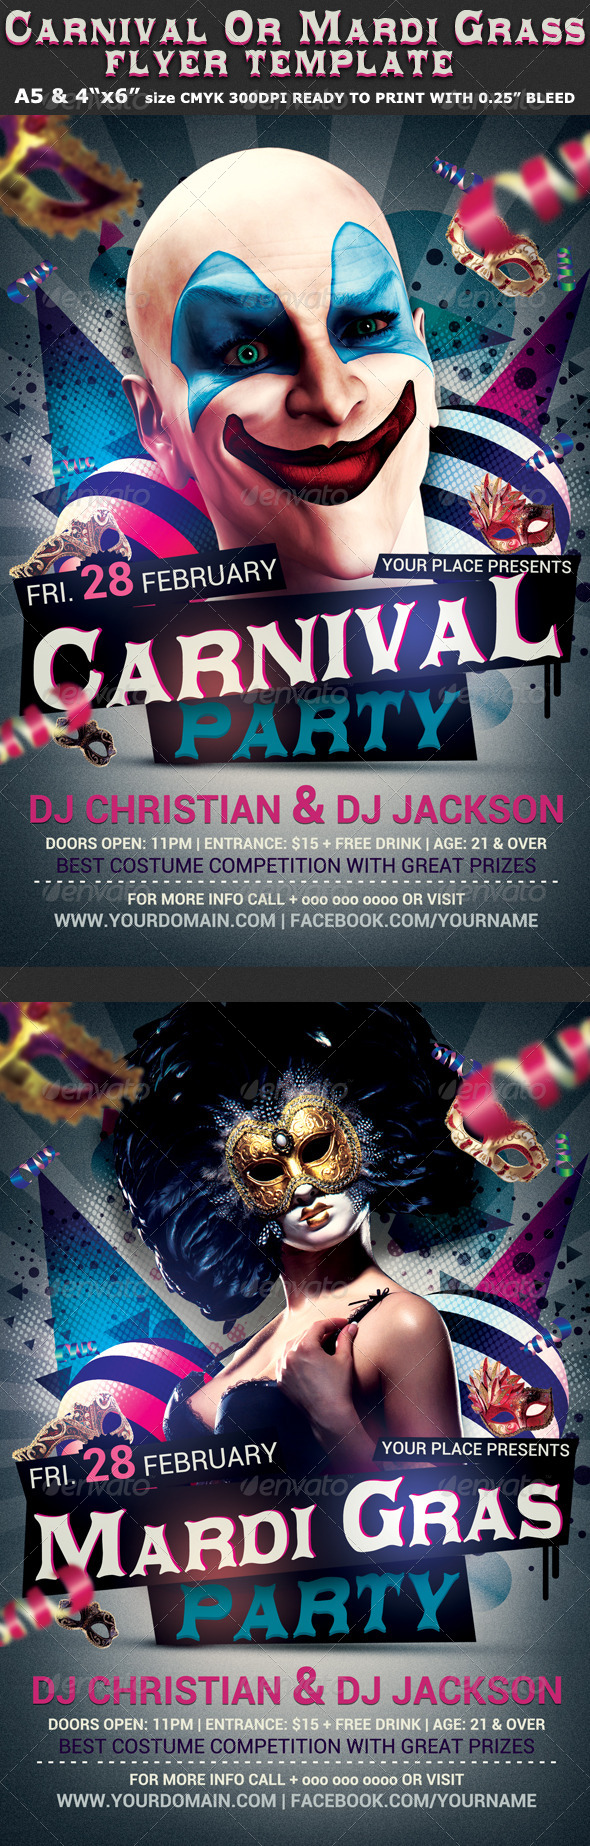 Carnival n Mardi Grass Party Flyer - Clubs & Parties Events